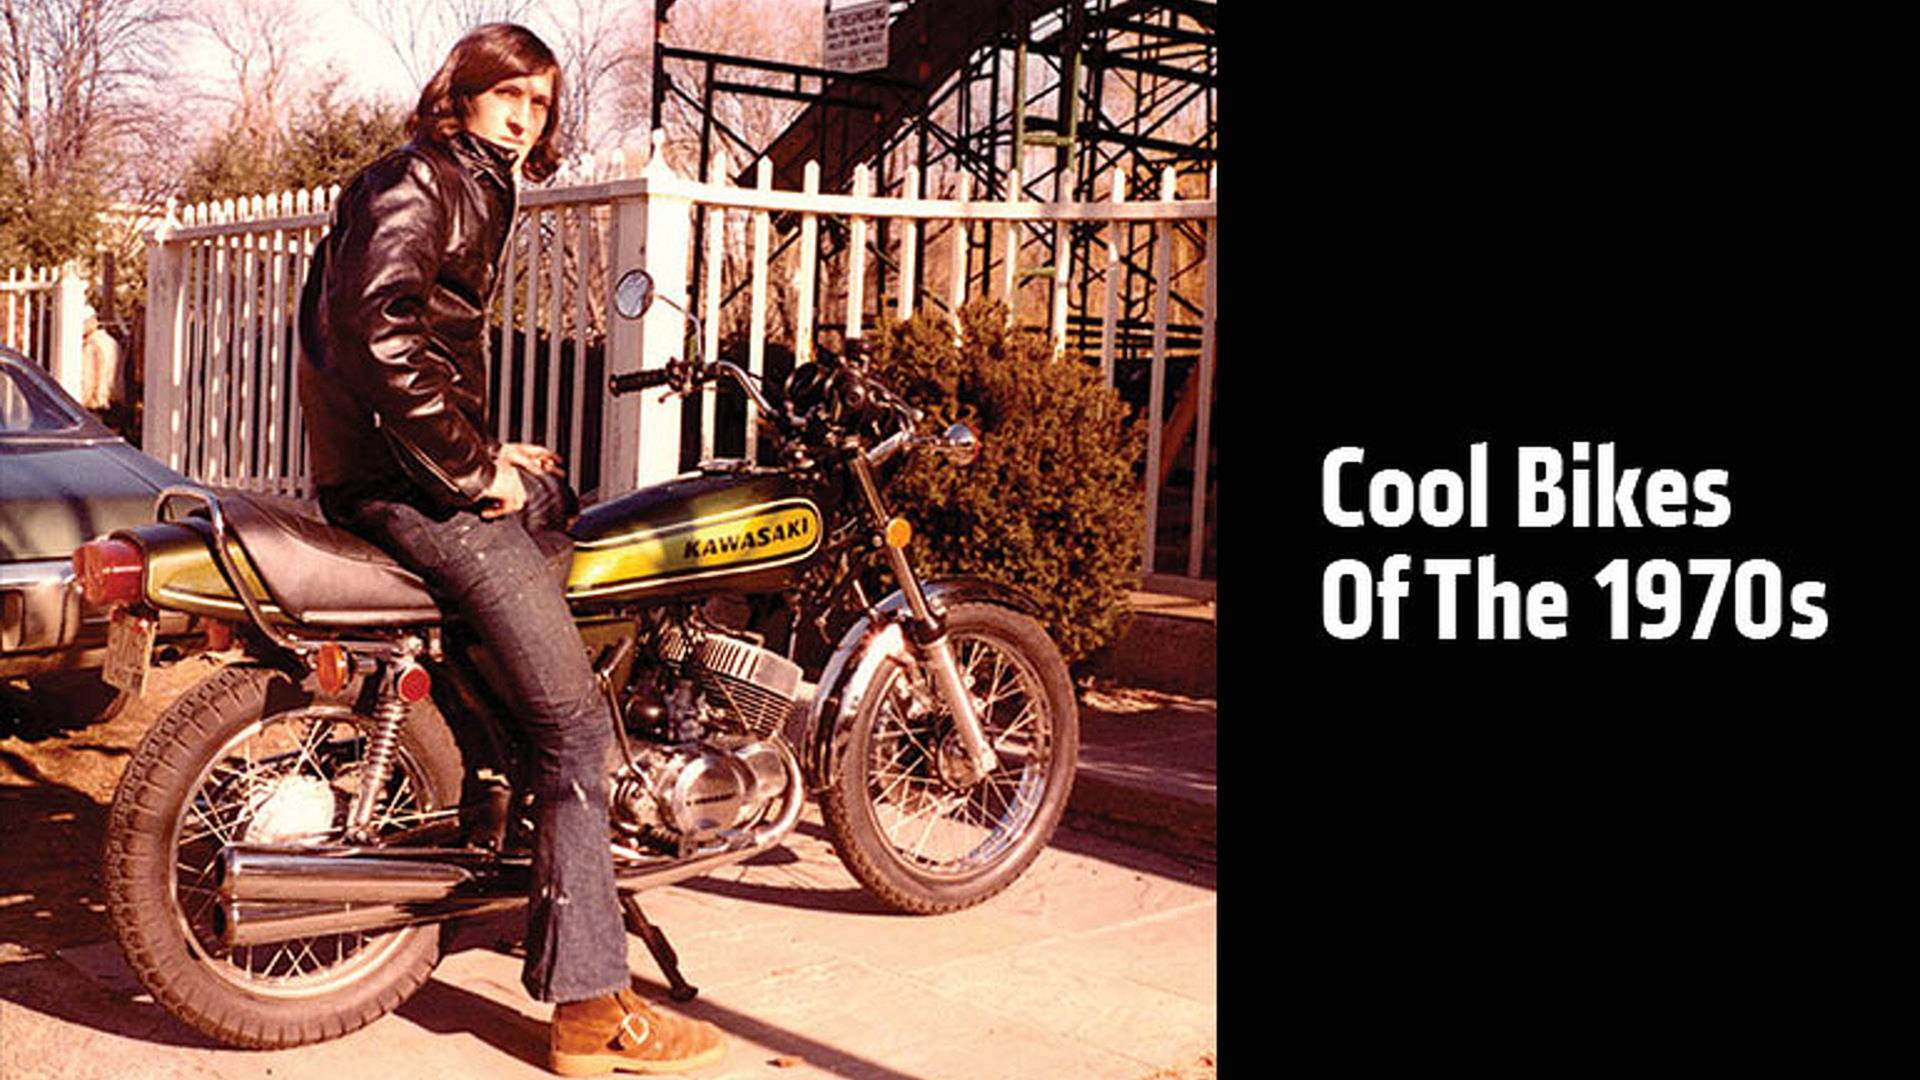 Cool Bikes Of The 1970s 1970 Honda 75cc Motorcycle